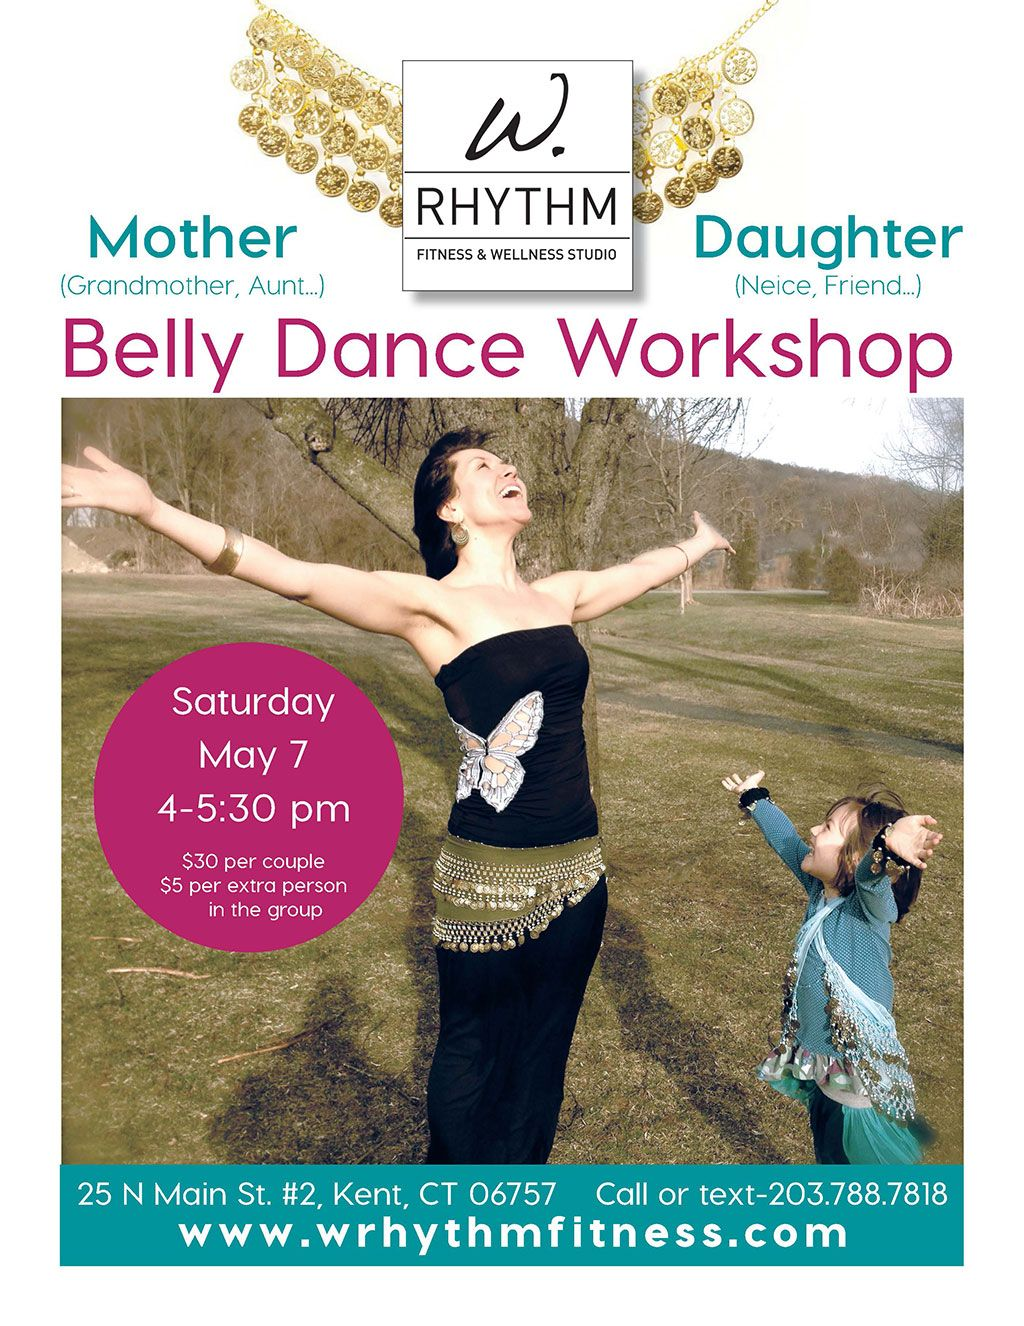 BELLY DANCE WORKSHOP Join us for a fast paced, high energy workout all based on belly dance moves. You will work your hips, abs, back and arms in all sort of new ways. Challenge your mind, muscle control, balance and flexibility while burning calories in this great experience!